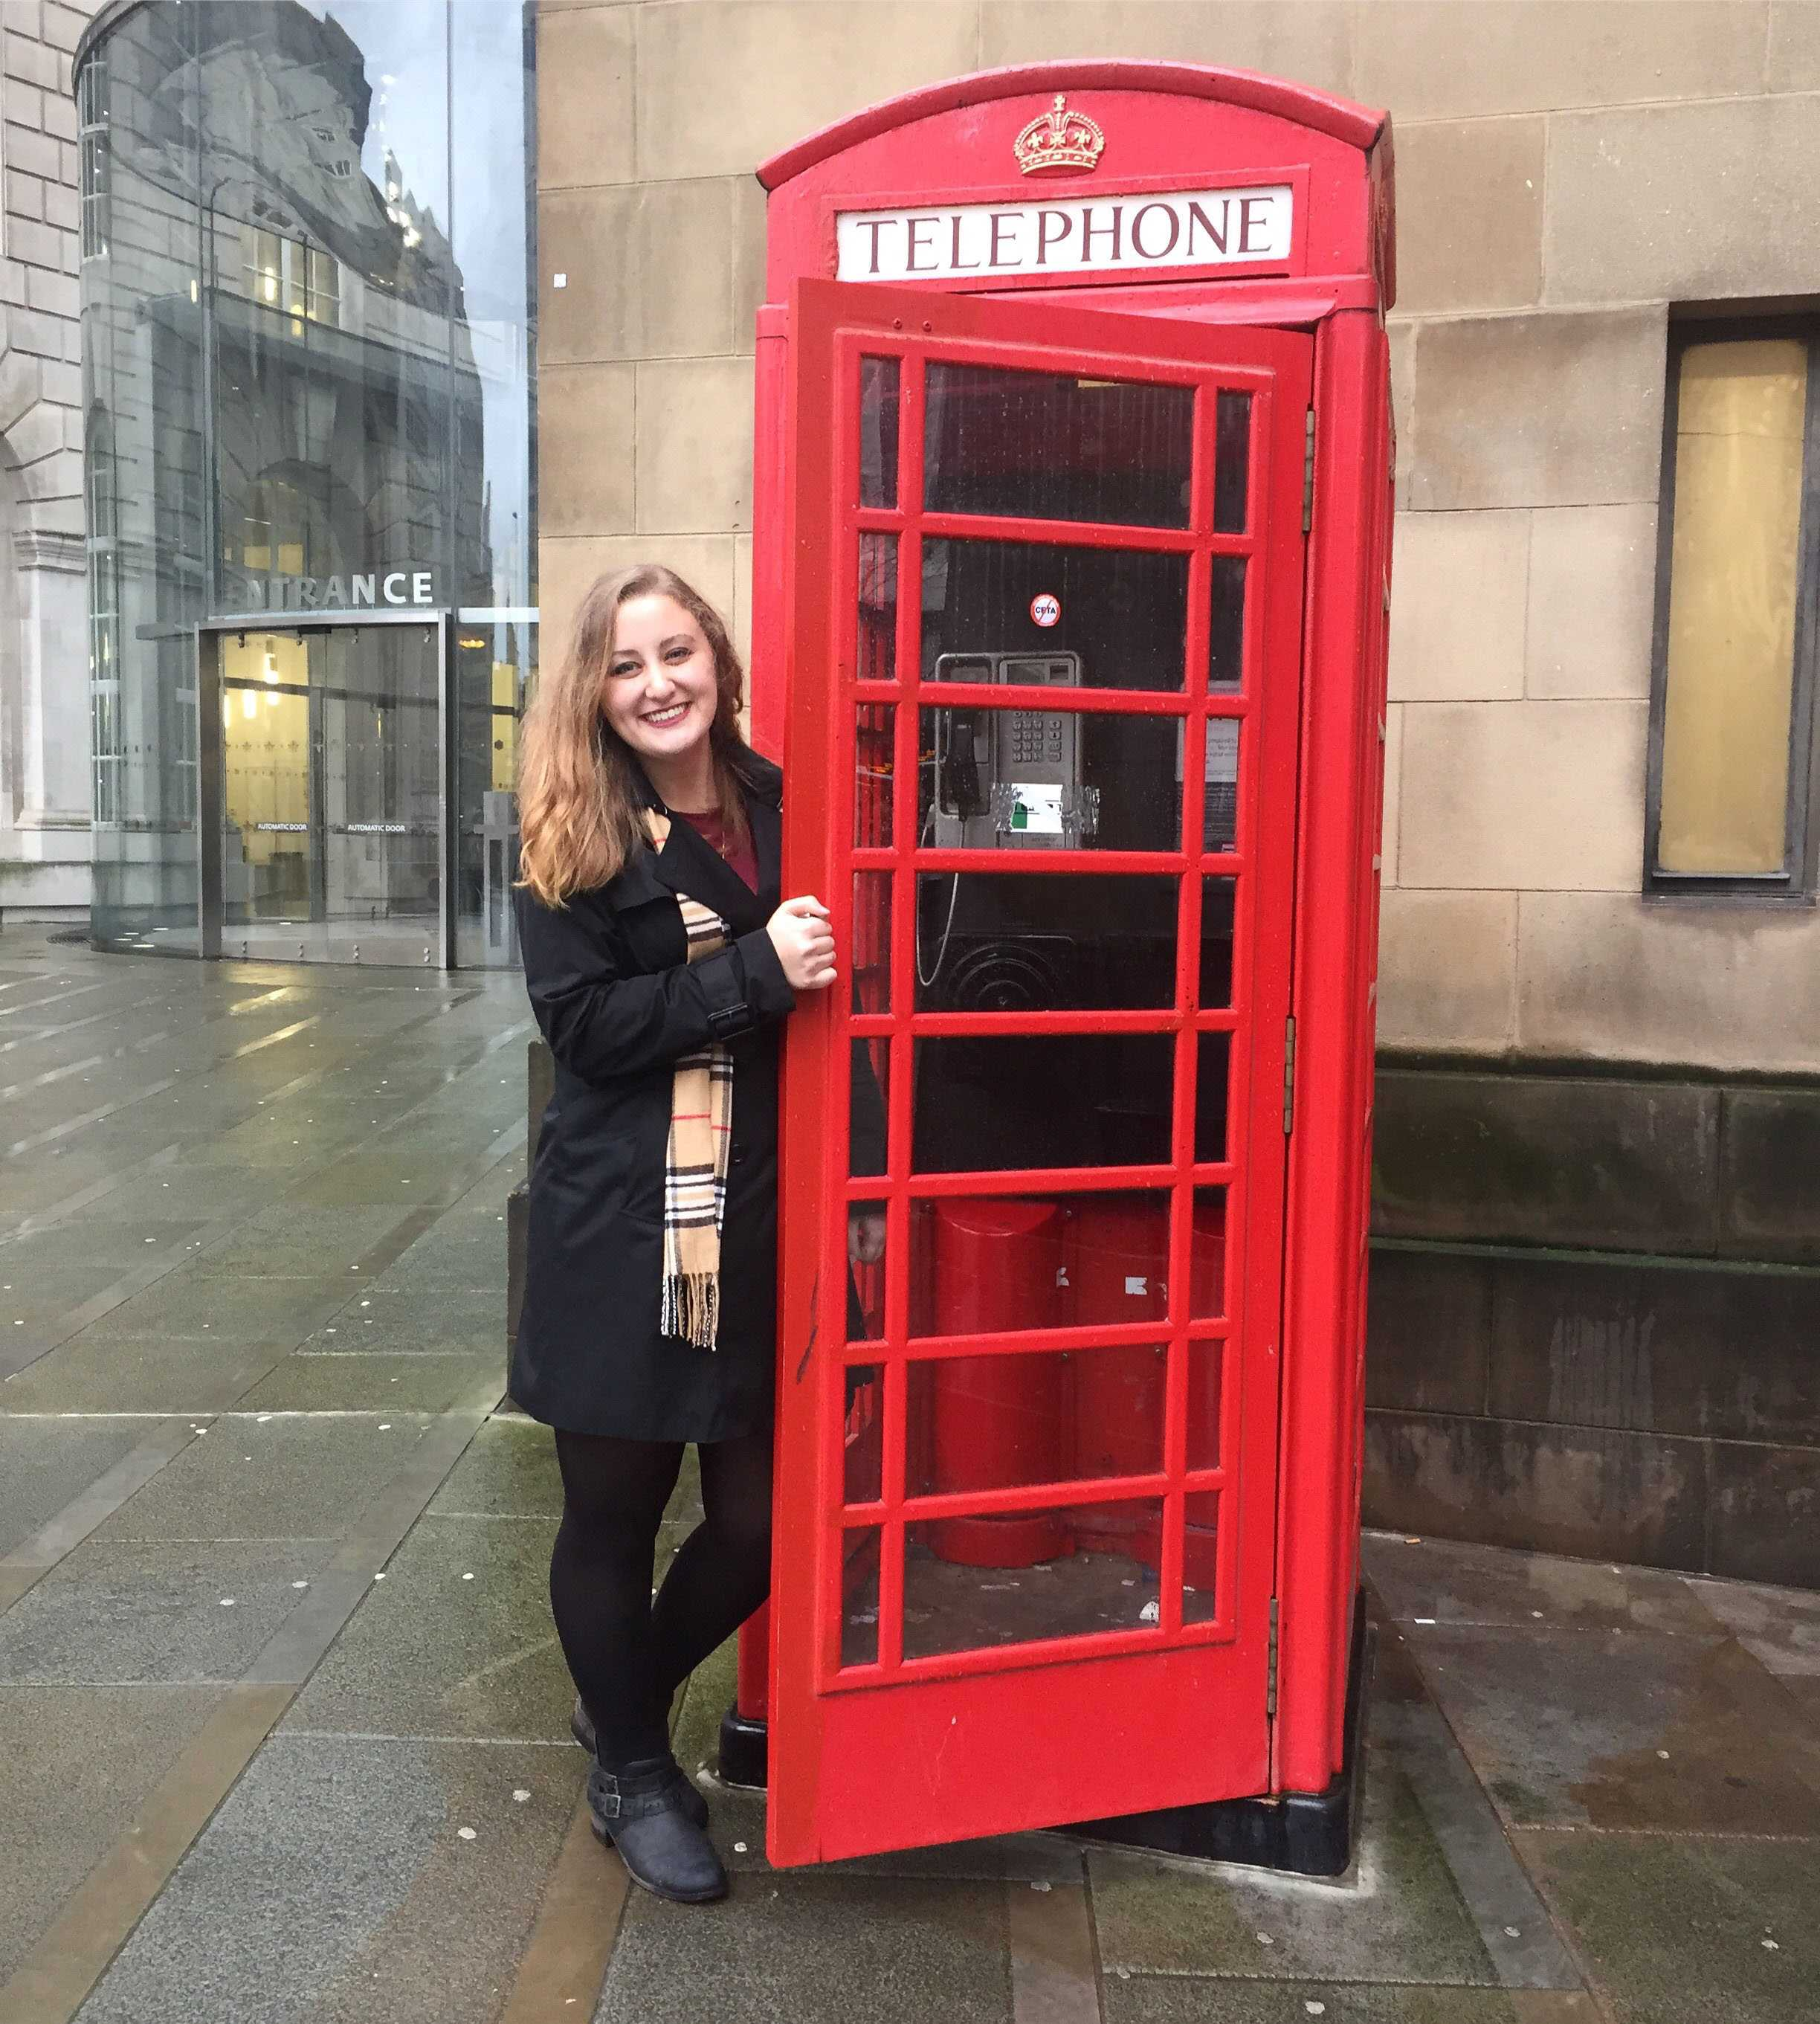 Isabella Jackson traveled to London, England during her semester studying abroad in Europe.